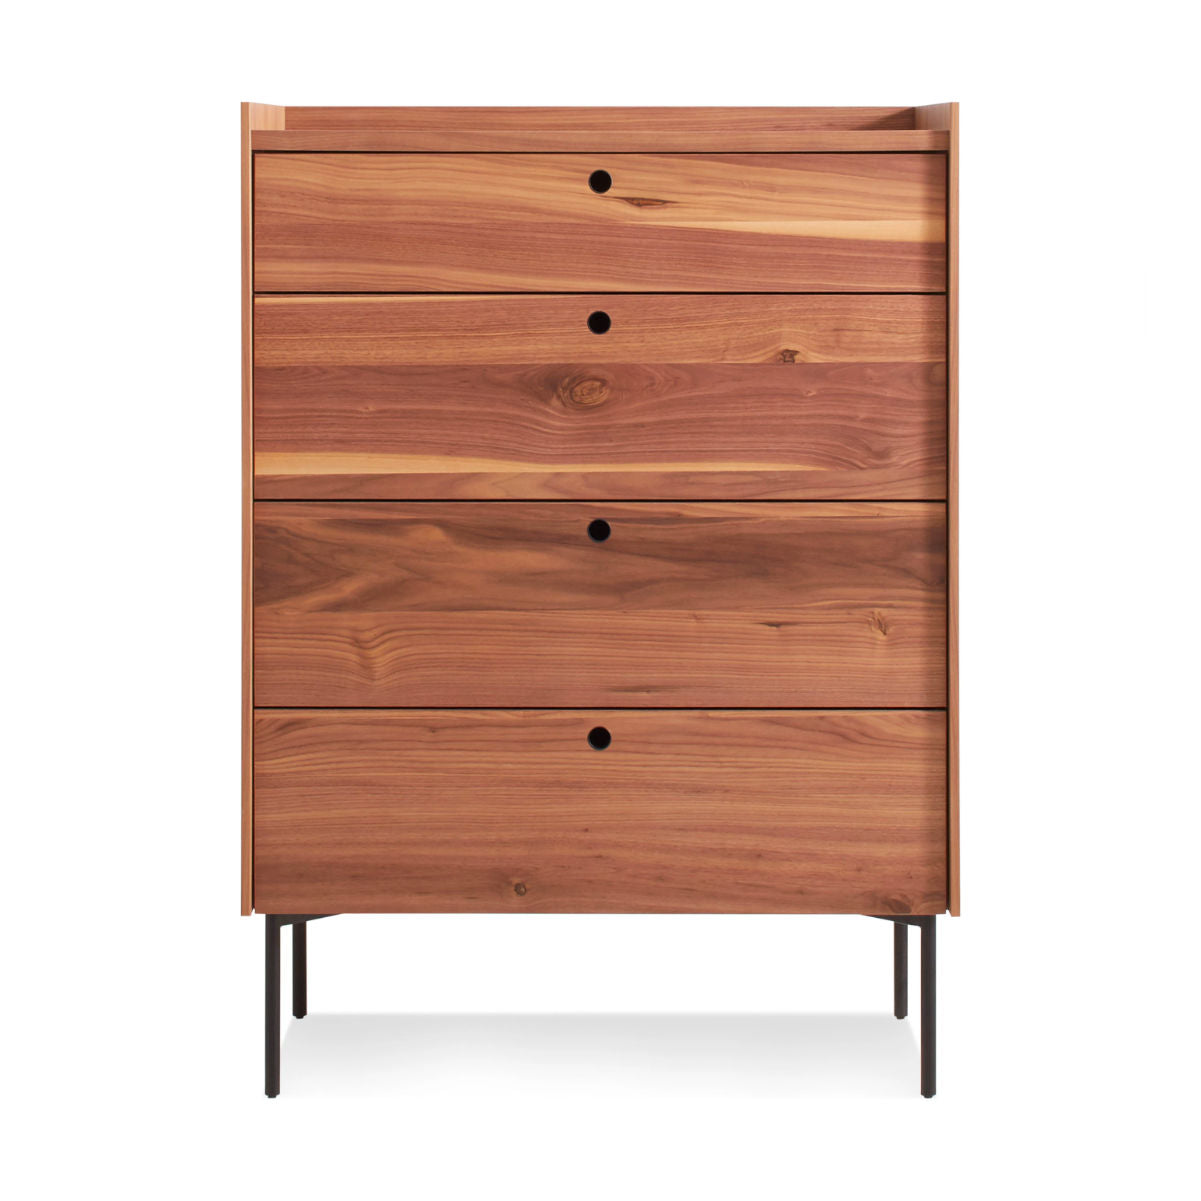 Blu Dot Peek 4 drawer dresser